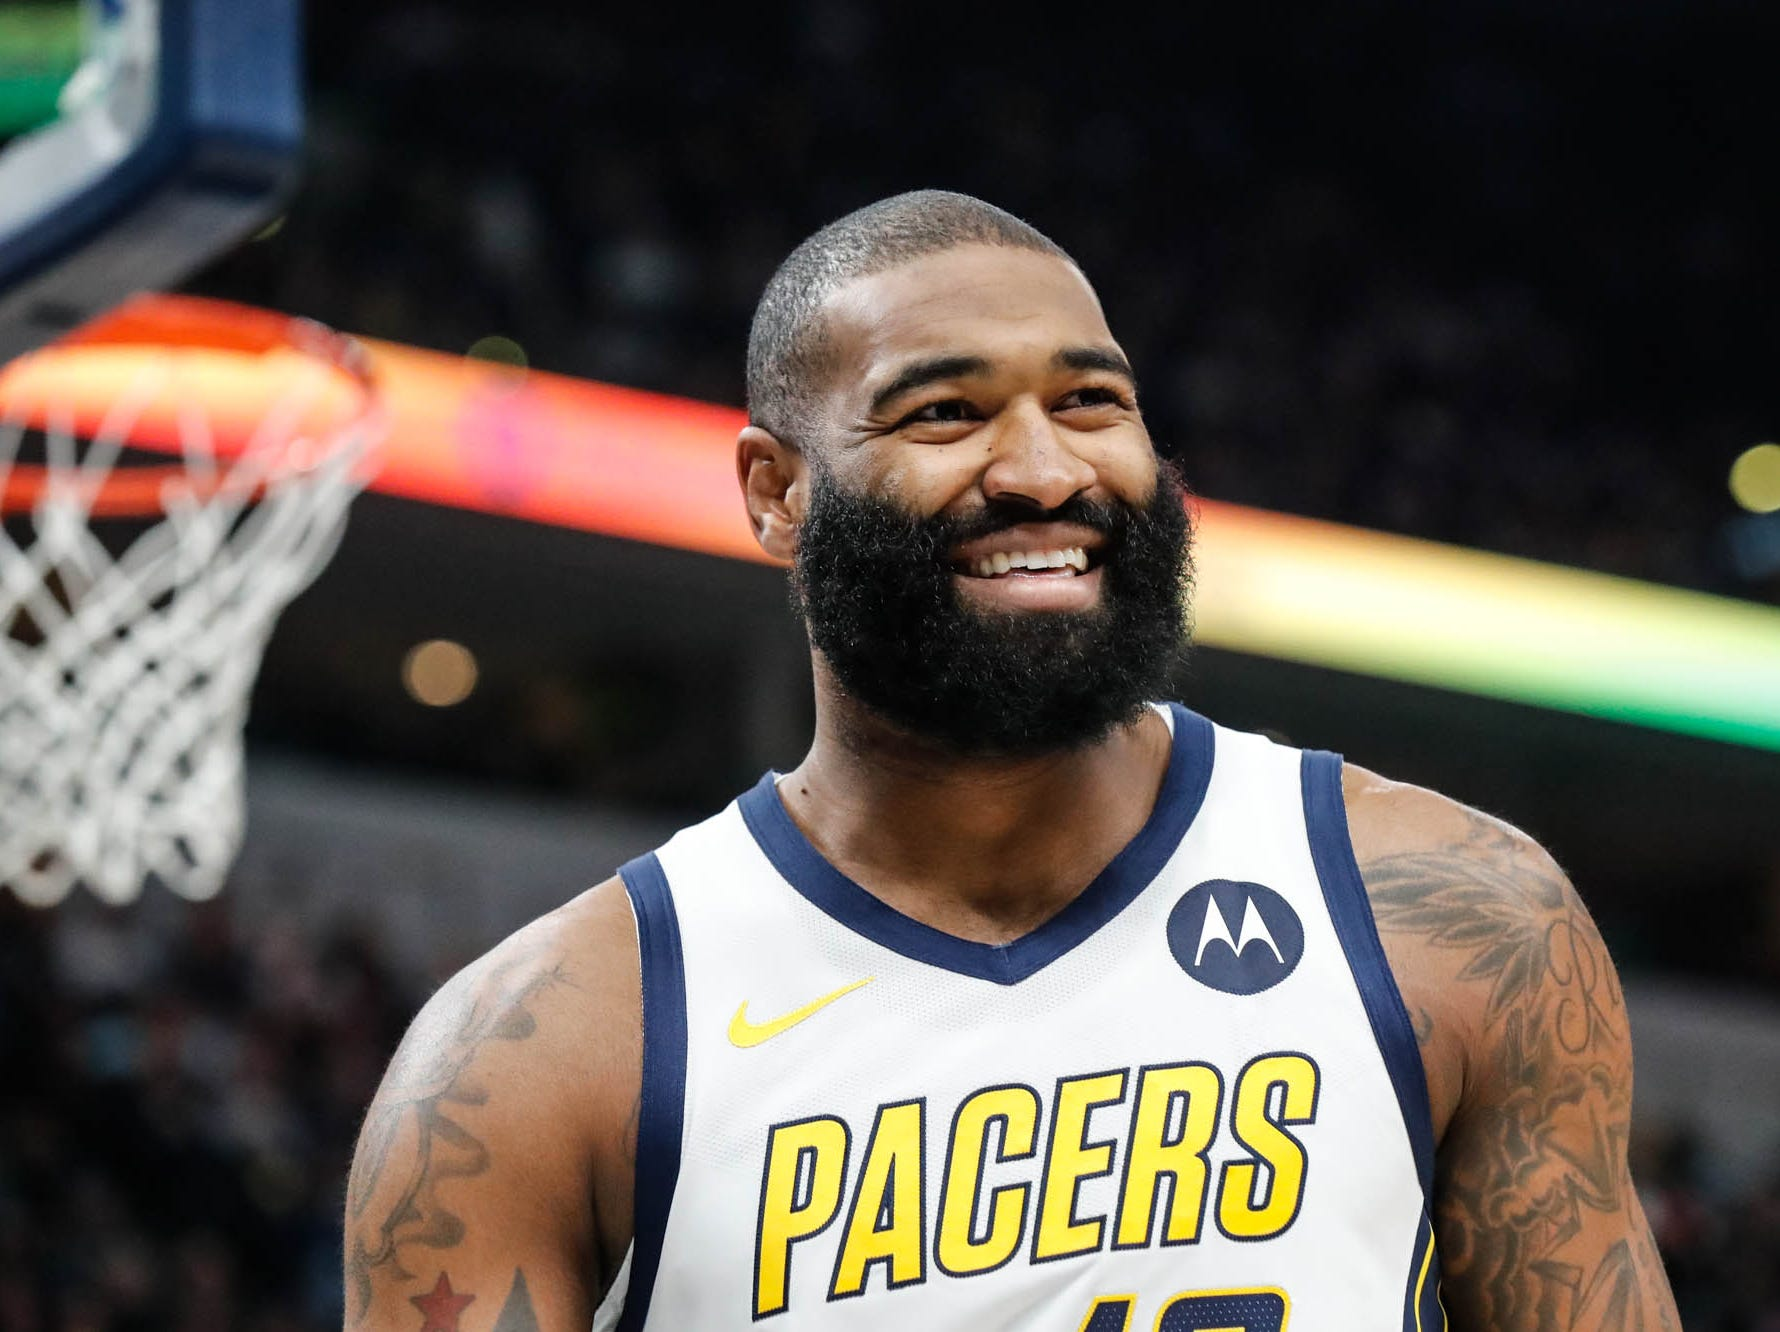 Indiana Pacer's center Kyle O'Quinn (10) laughs at teammate Indiana Pacer's guard Darren Collison (2) who was hit in the shins by an unexpected pass during a game between the Indiana Pacers and the Detroit Pistons at at Bankers Life Fieldhouse in Indianapolis on Friday, Dec. 28, 2018.